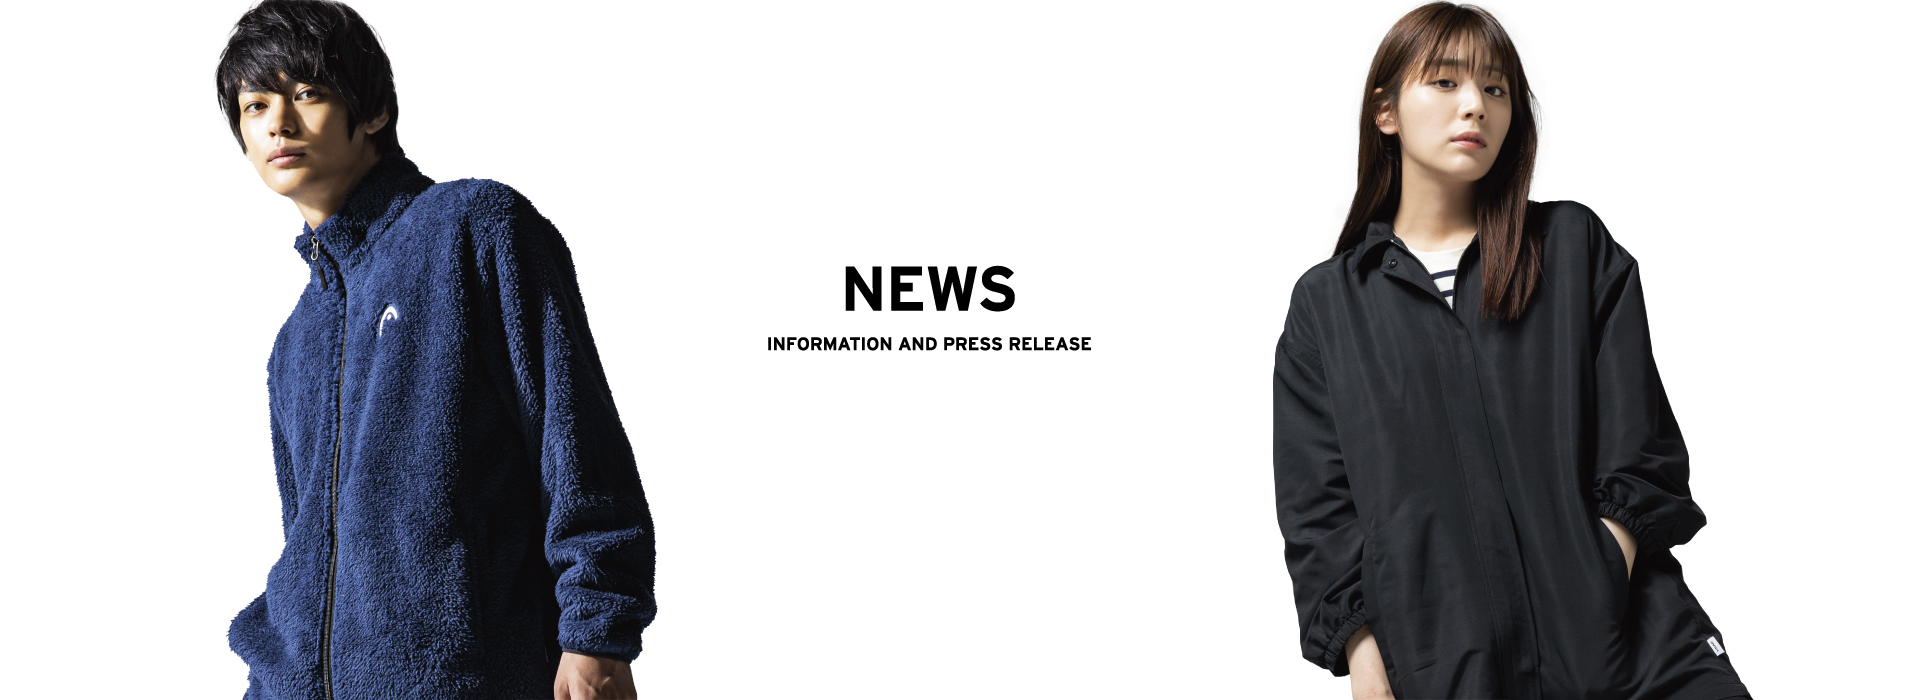 NEWS INFORMATION AND PRESS RELEASE